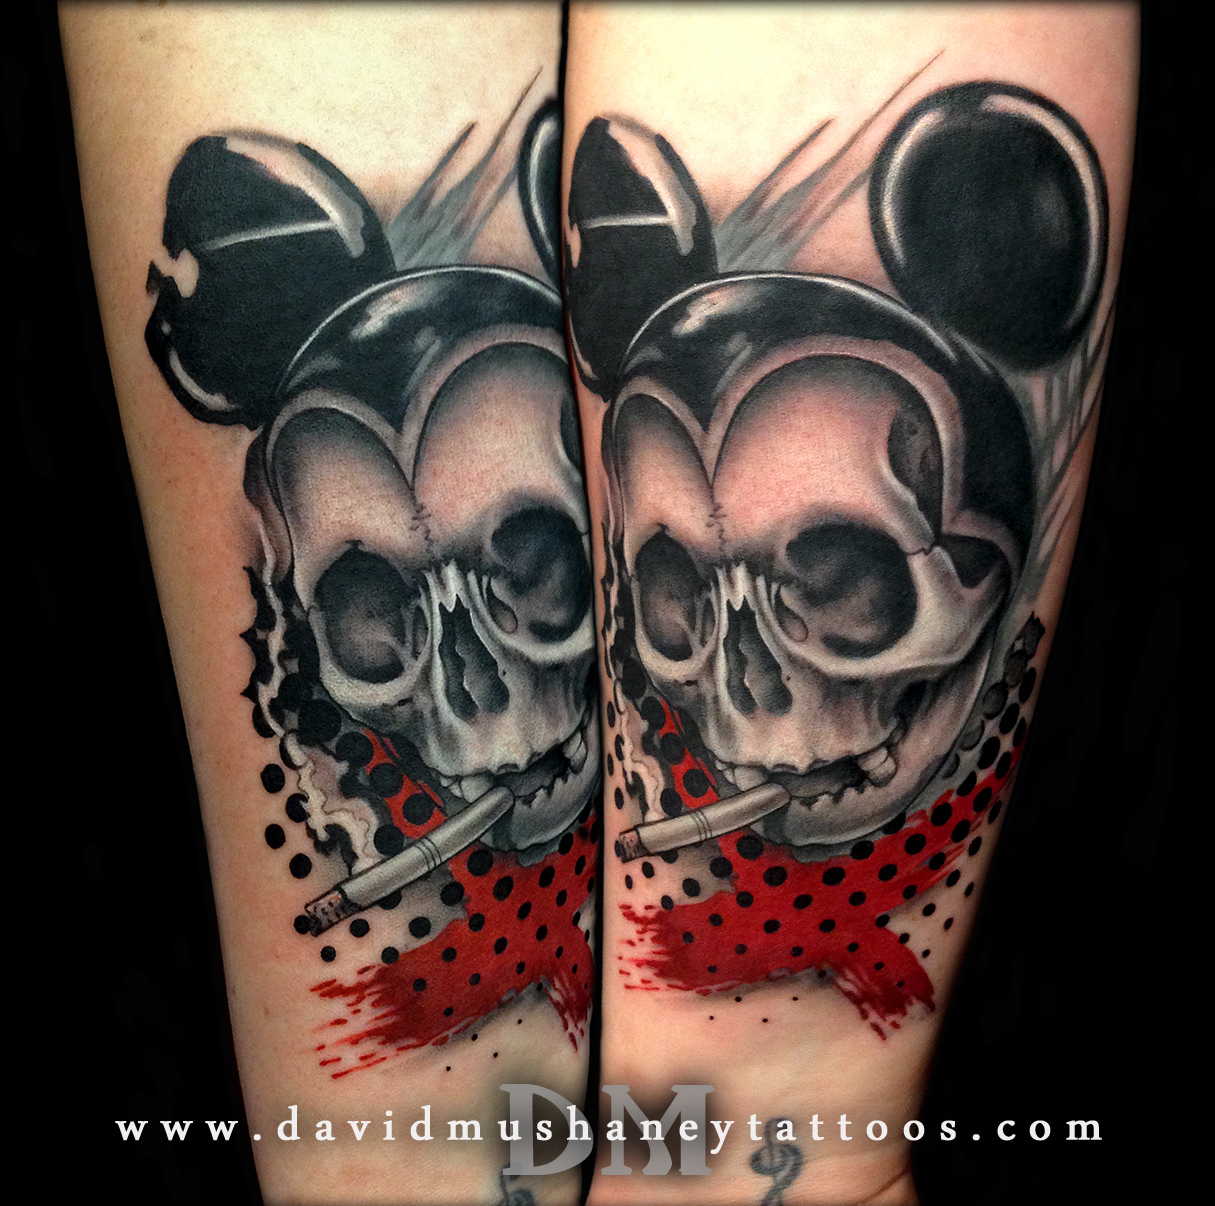 Trash Polka Mickey Mouse Tattoo by David Mushaney